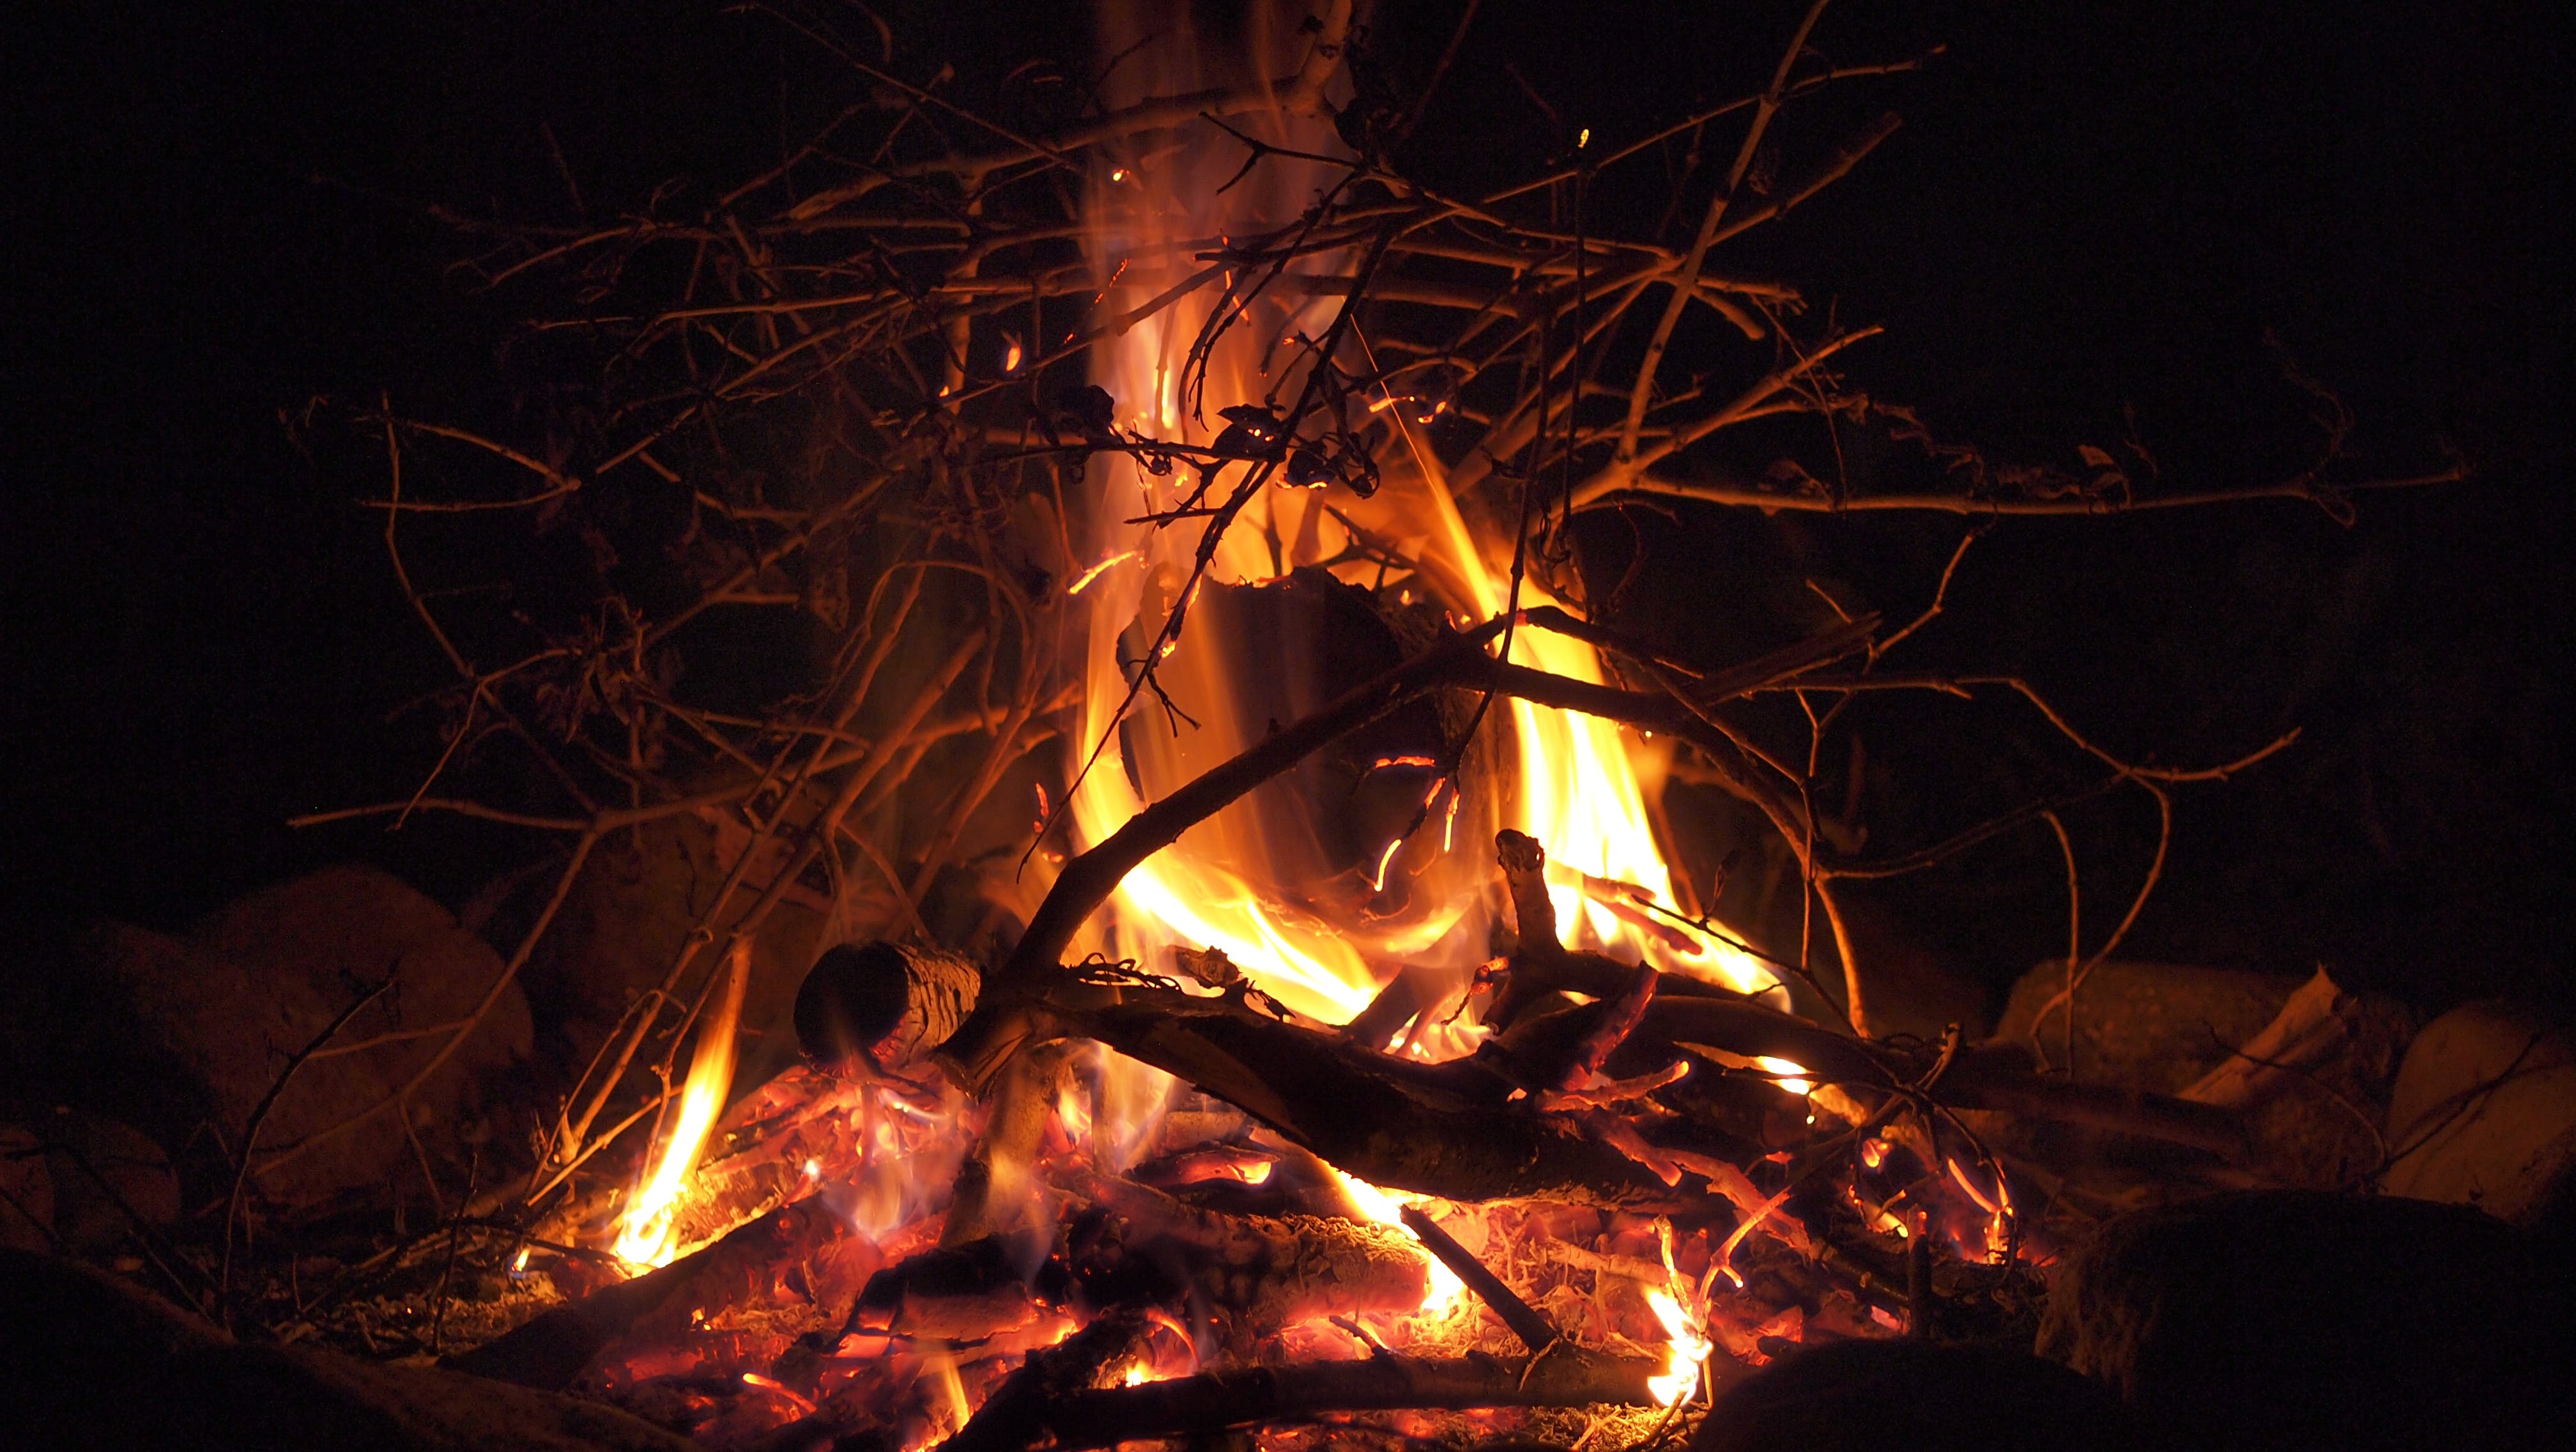 Free stock photo of bonfire, campfire, fire, fireplace